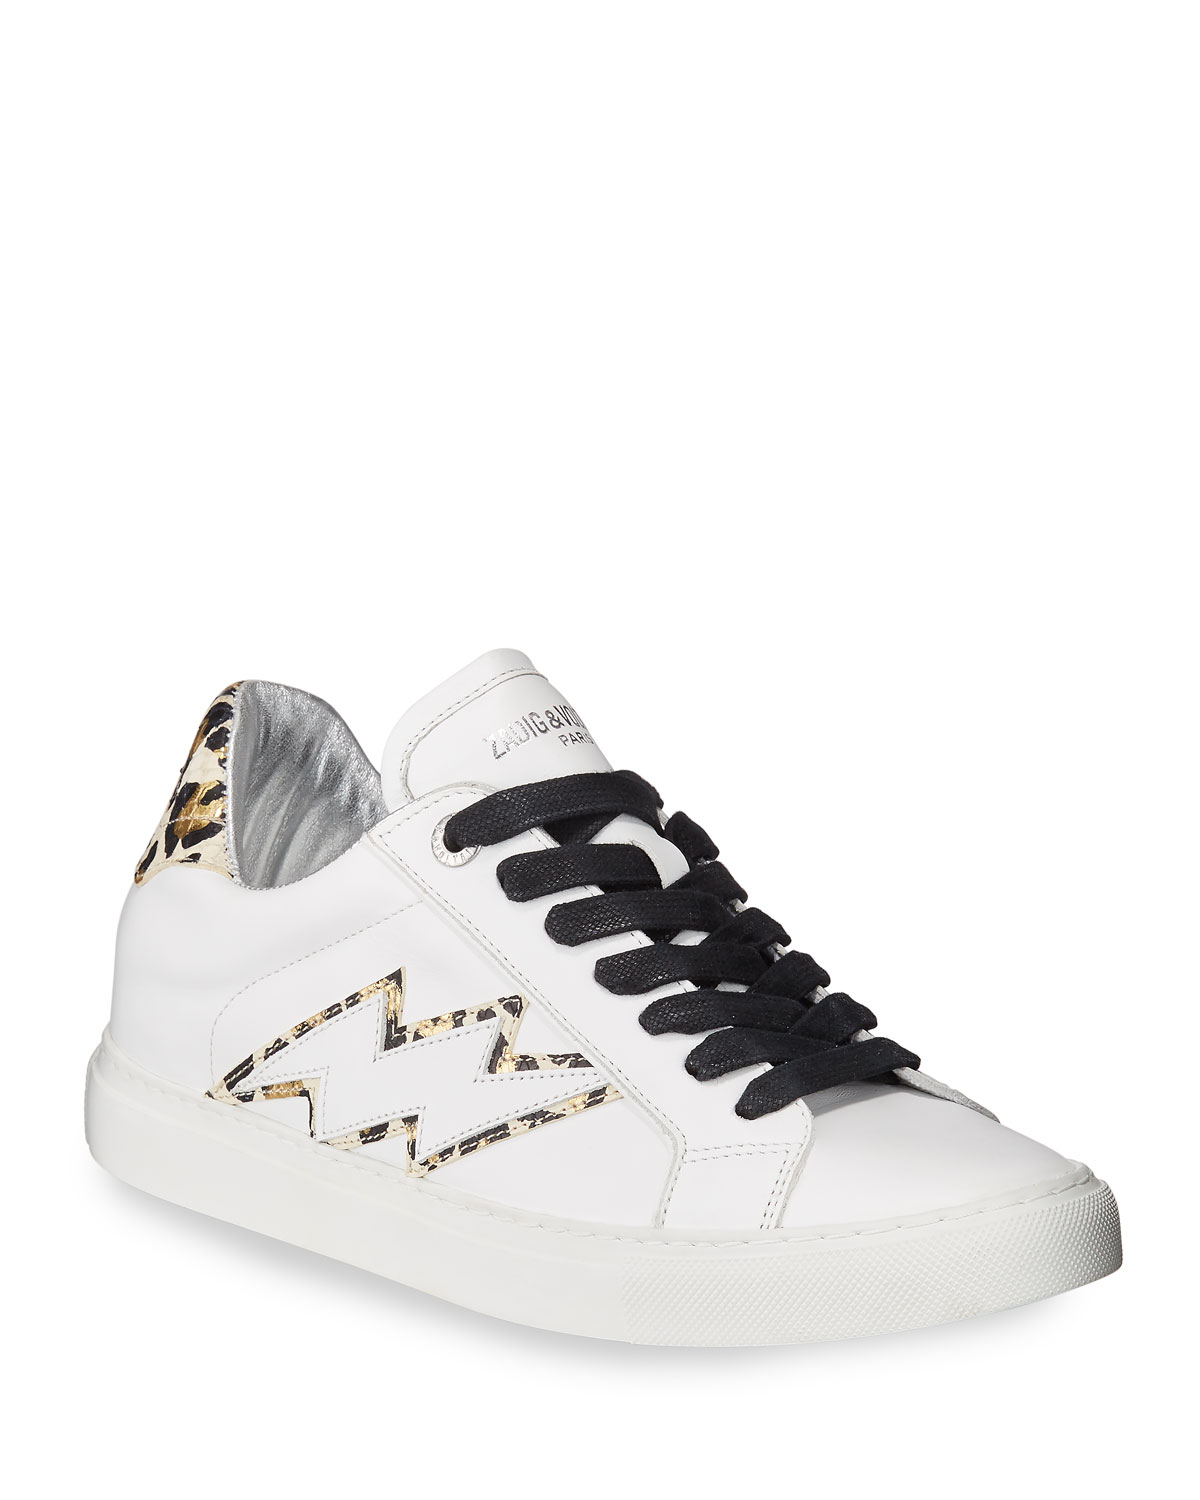 Zadig & Voltaire Sneakers ZV1747 LEATHER AND LEO BOLT SNEAKERS